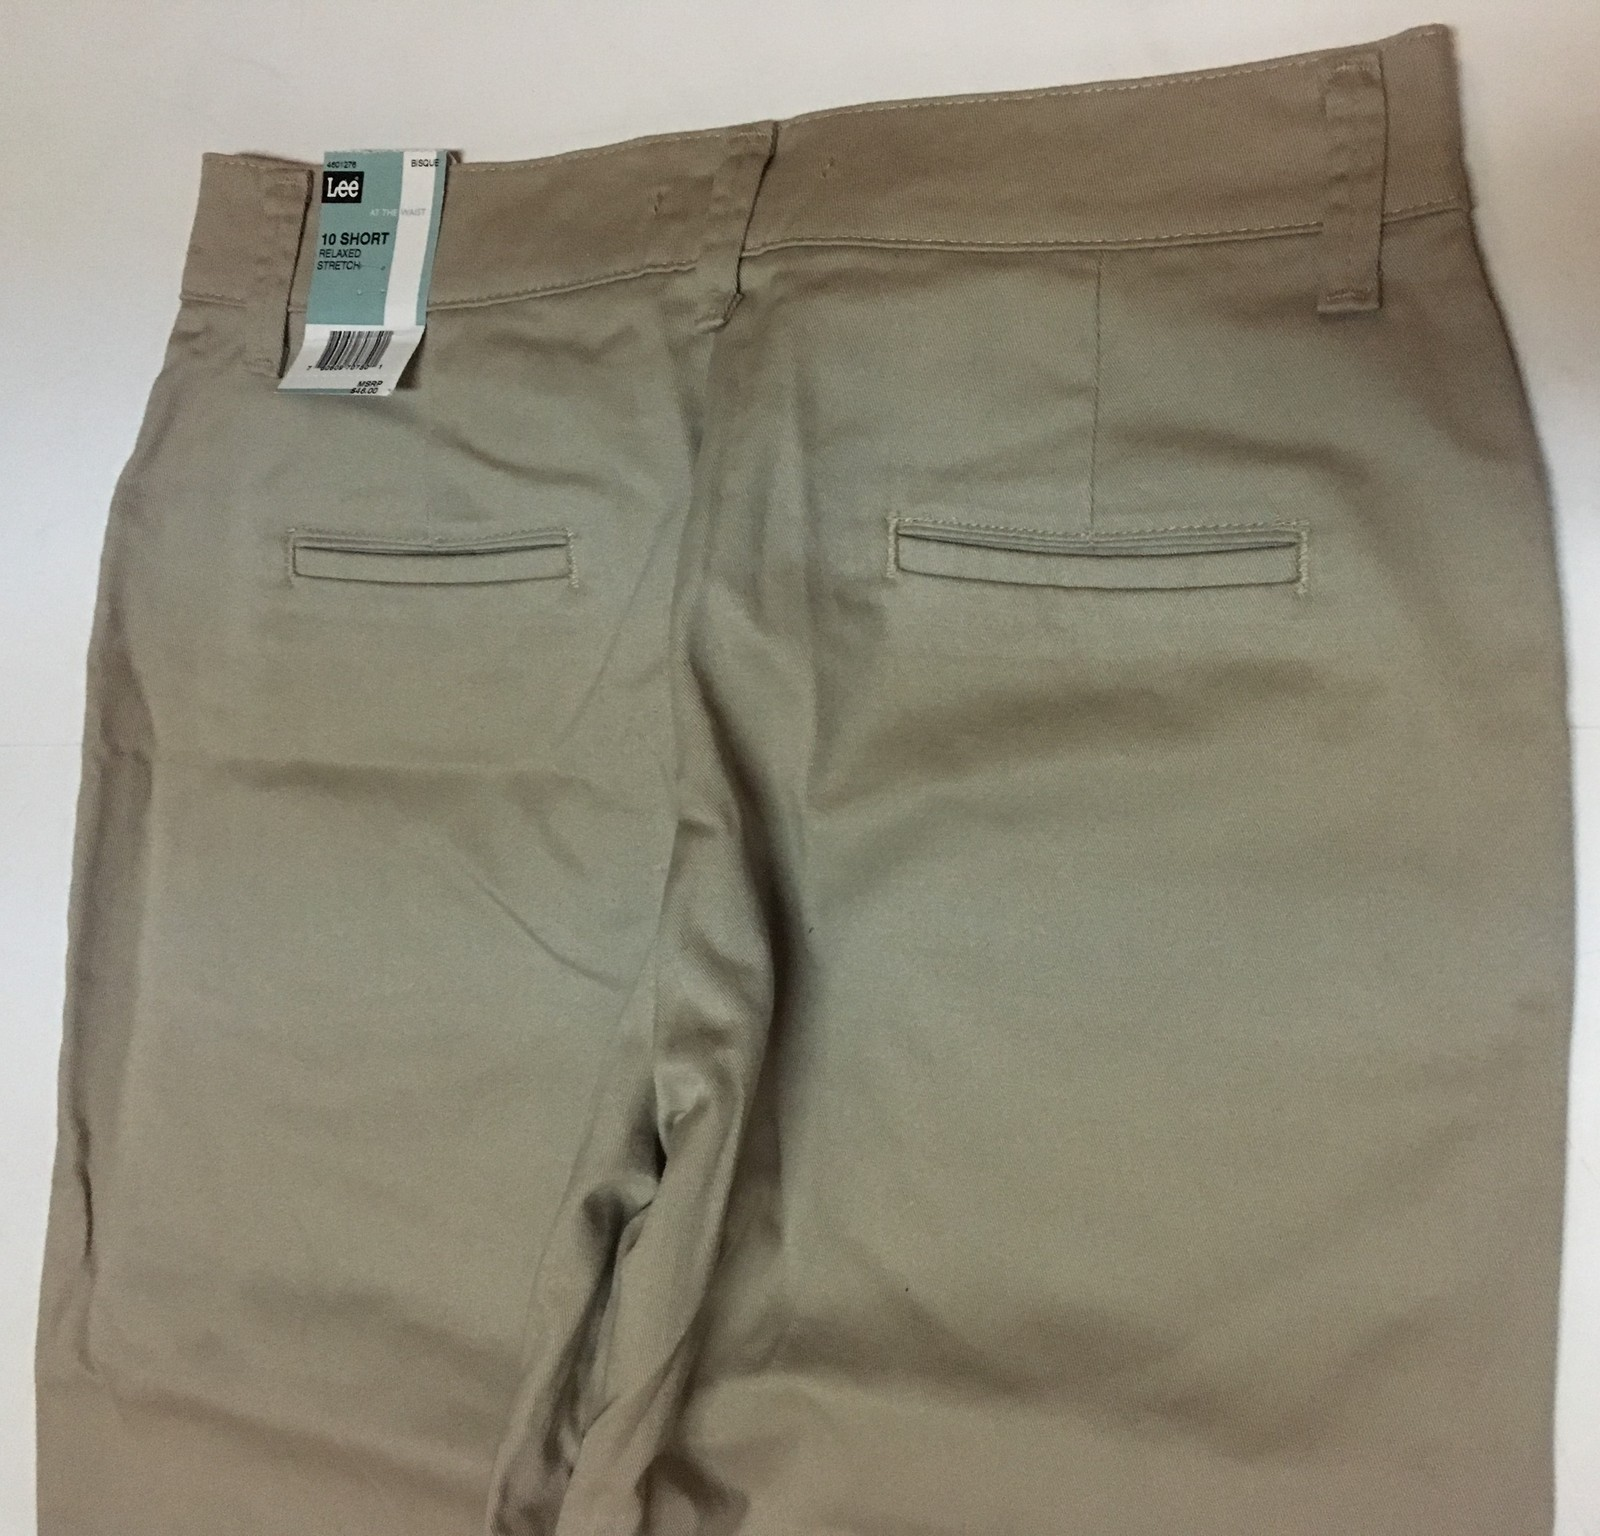 Lee Relaxed Fit Stretch Beige Pants Sz 10 Short Straight Leg NWT image 8